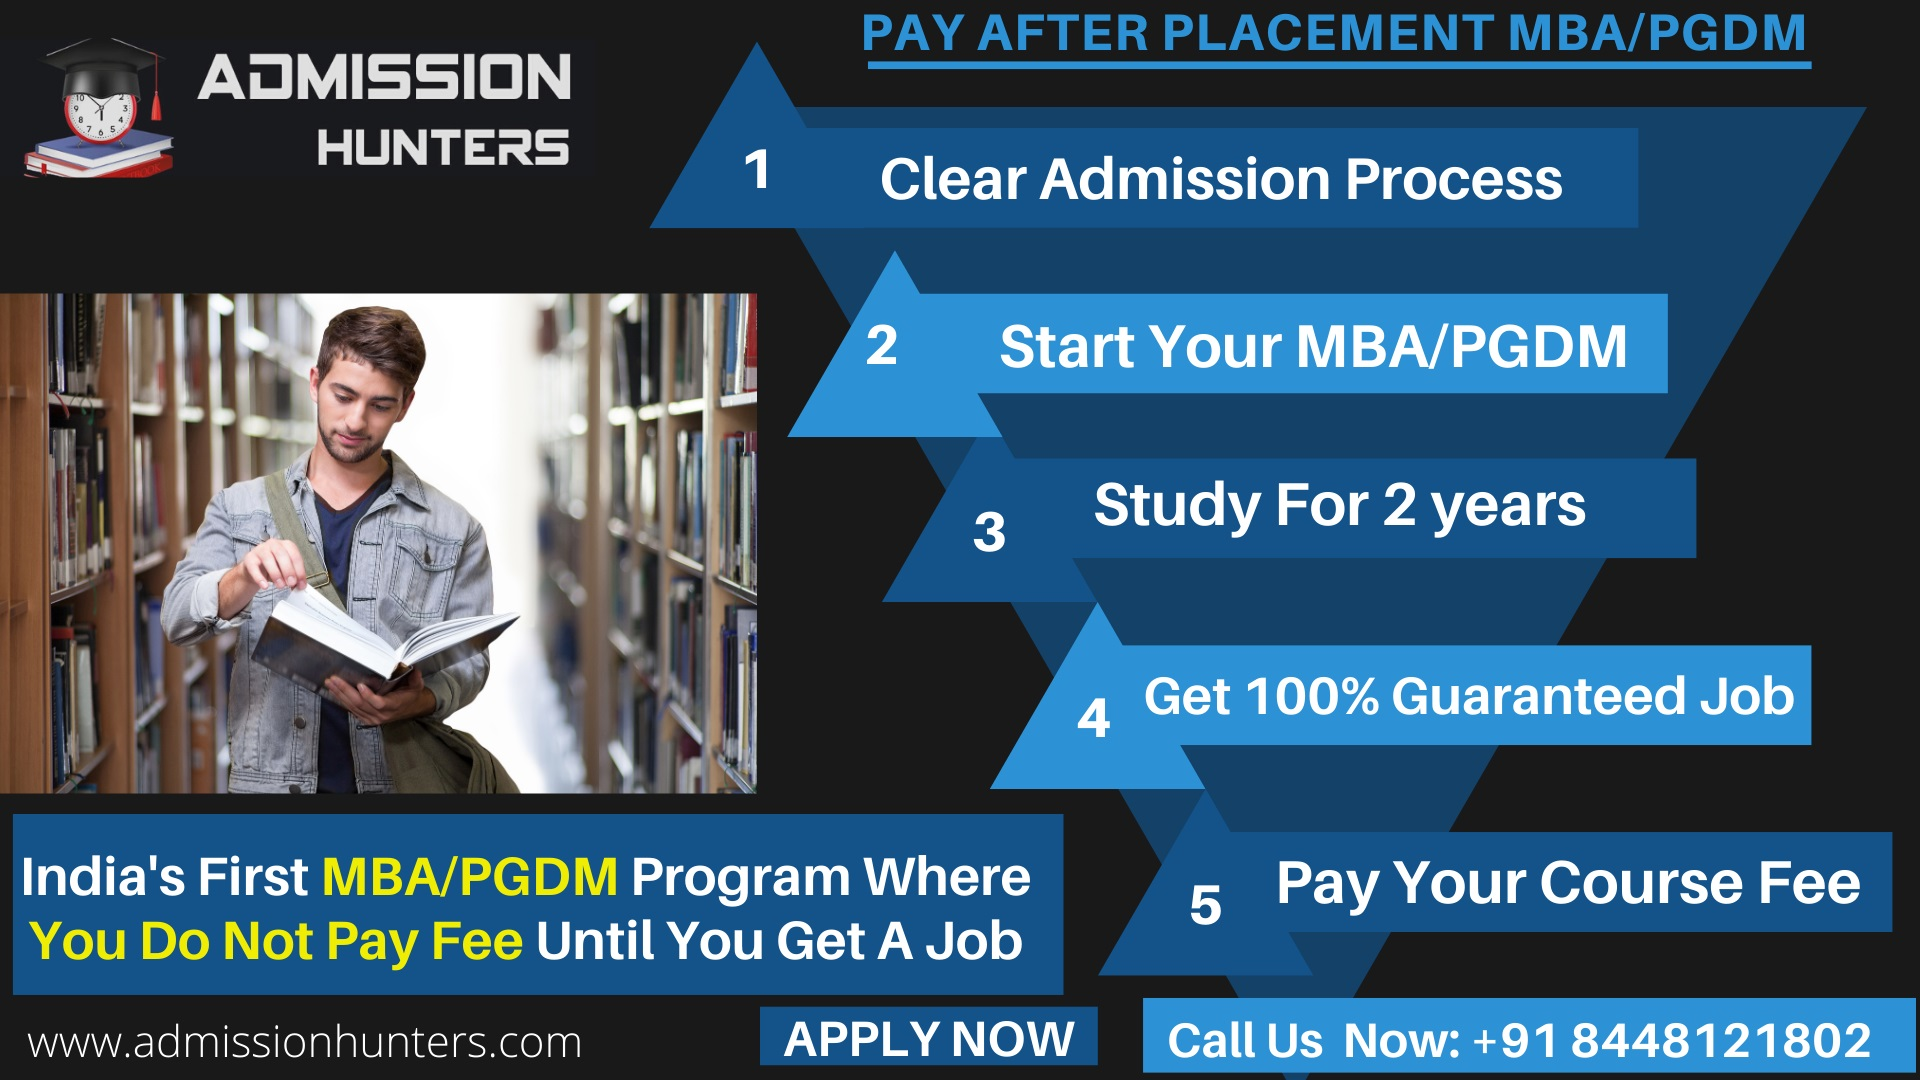 PAY AFTER PLACEMENT PROGRAM- Admission Hunters